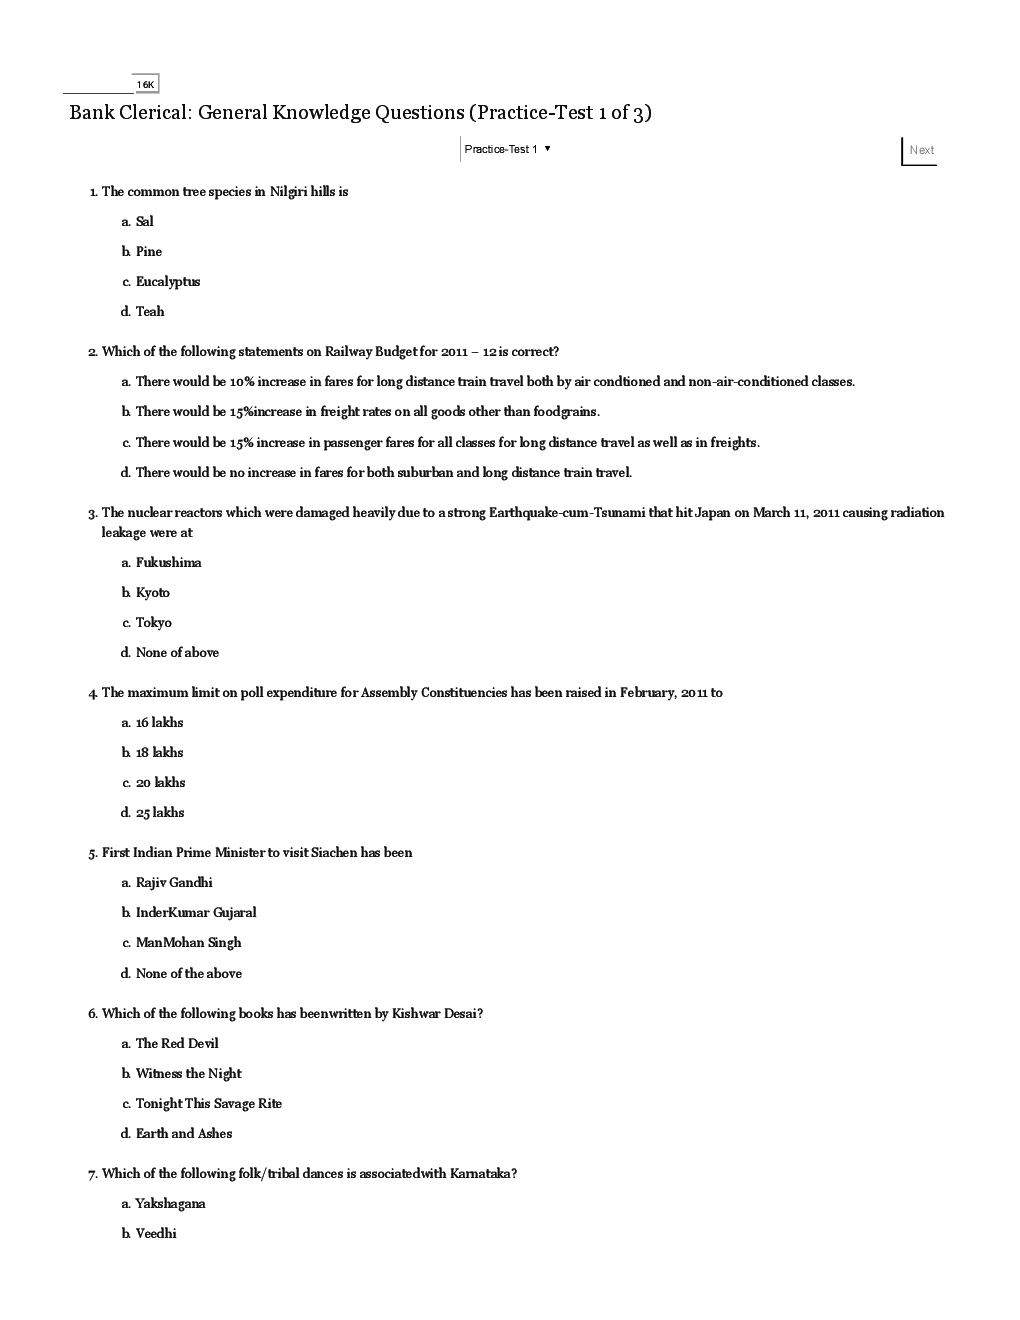 IBPS Clerical General Knowledge Questions With Answers Practice Test 1 To Test 3 - Page 2